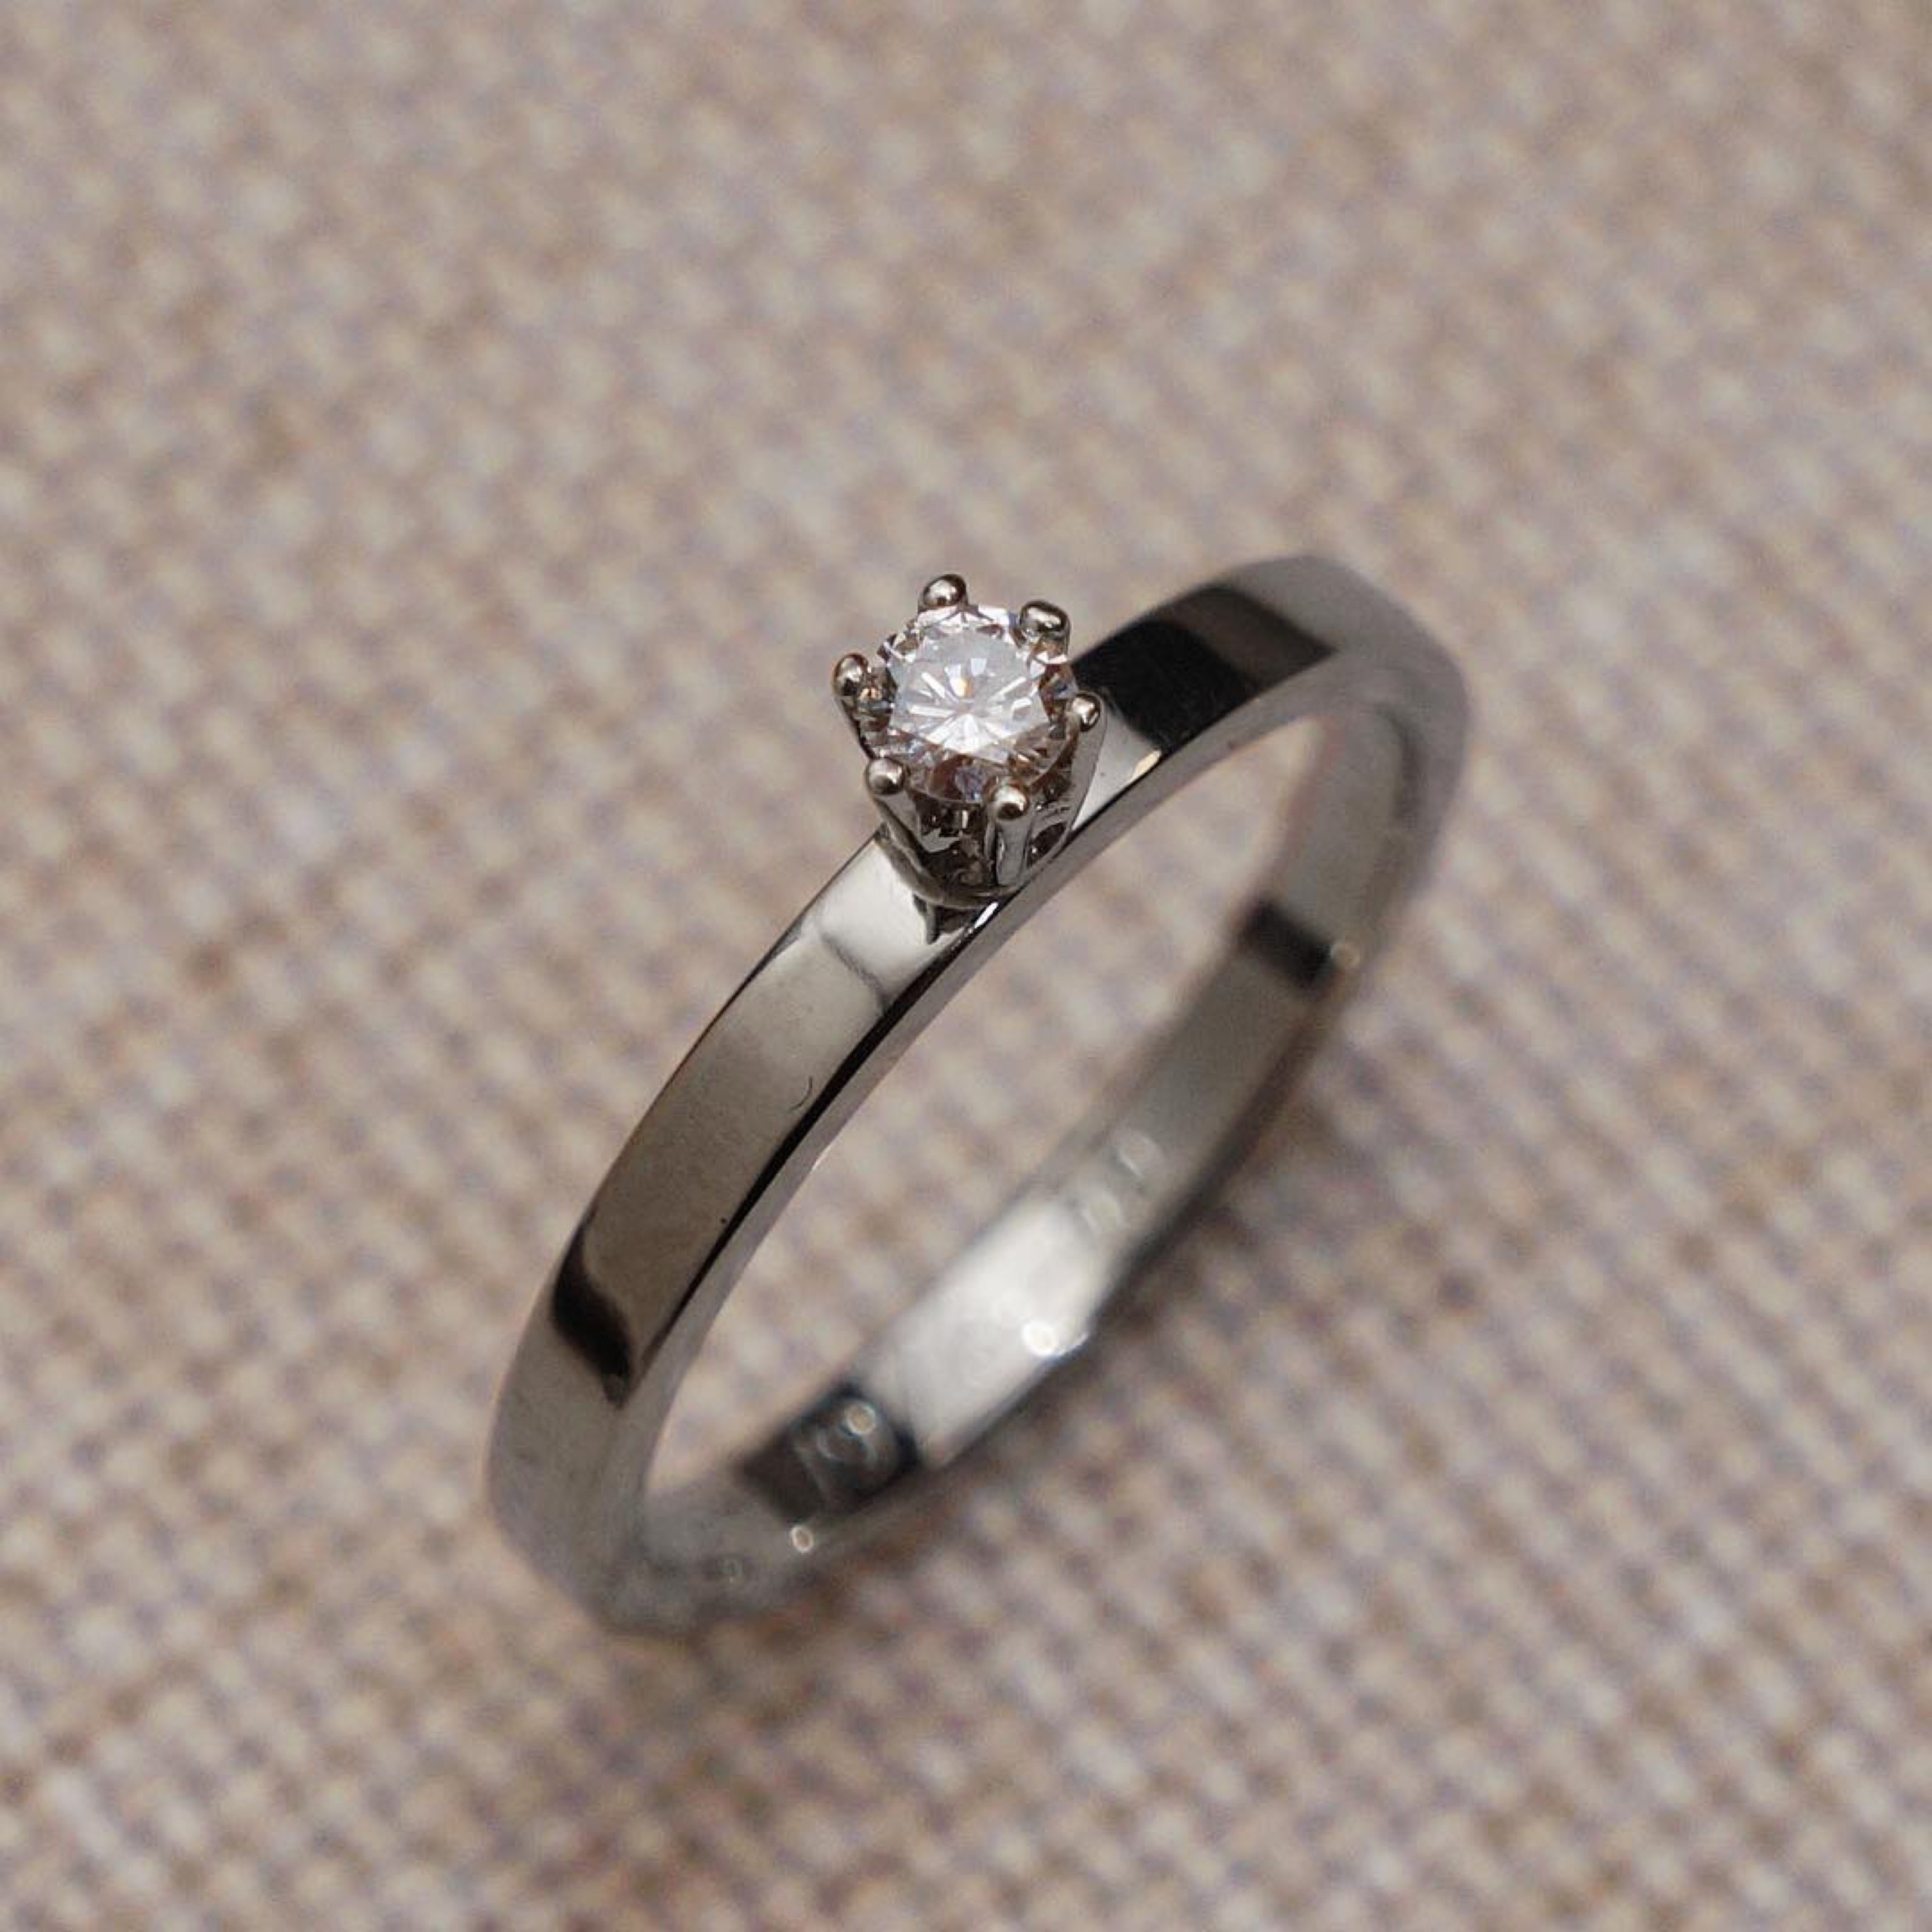 OLD STONE - NEW RING